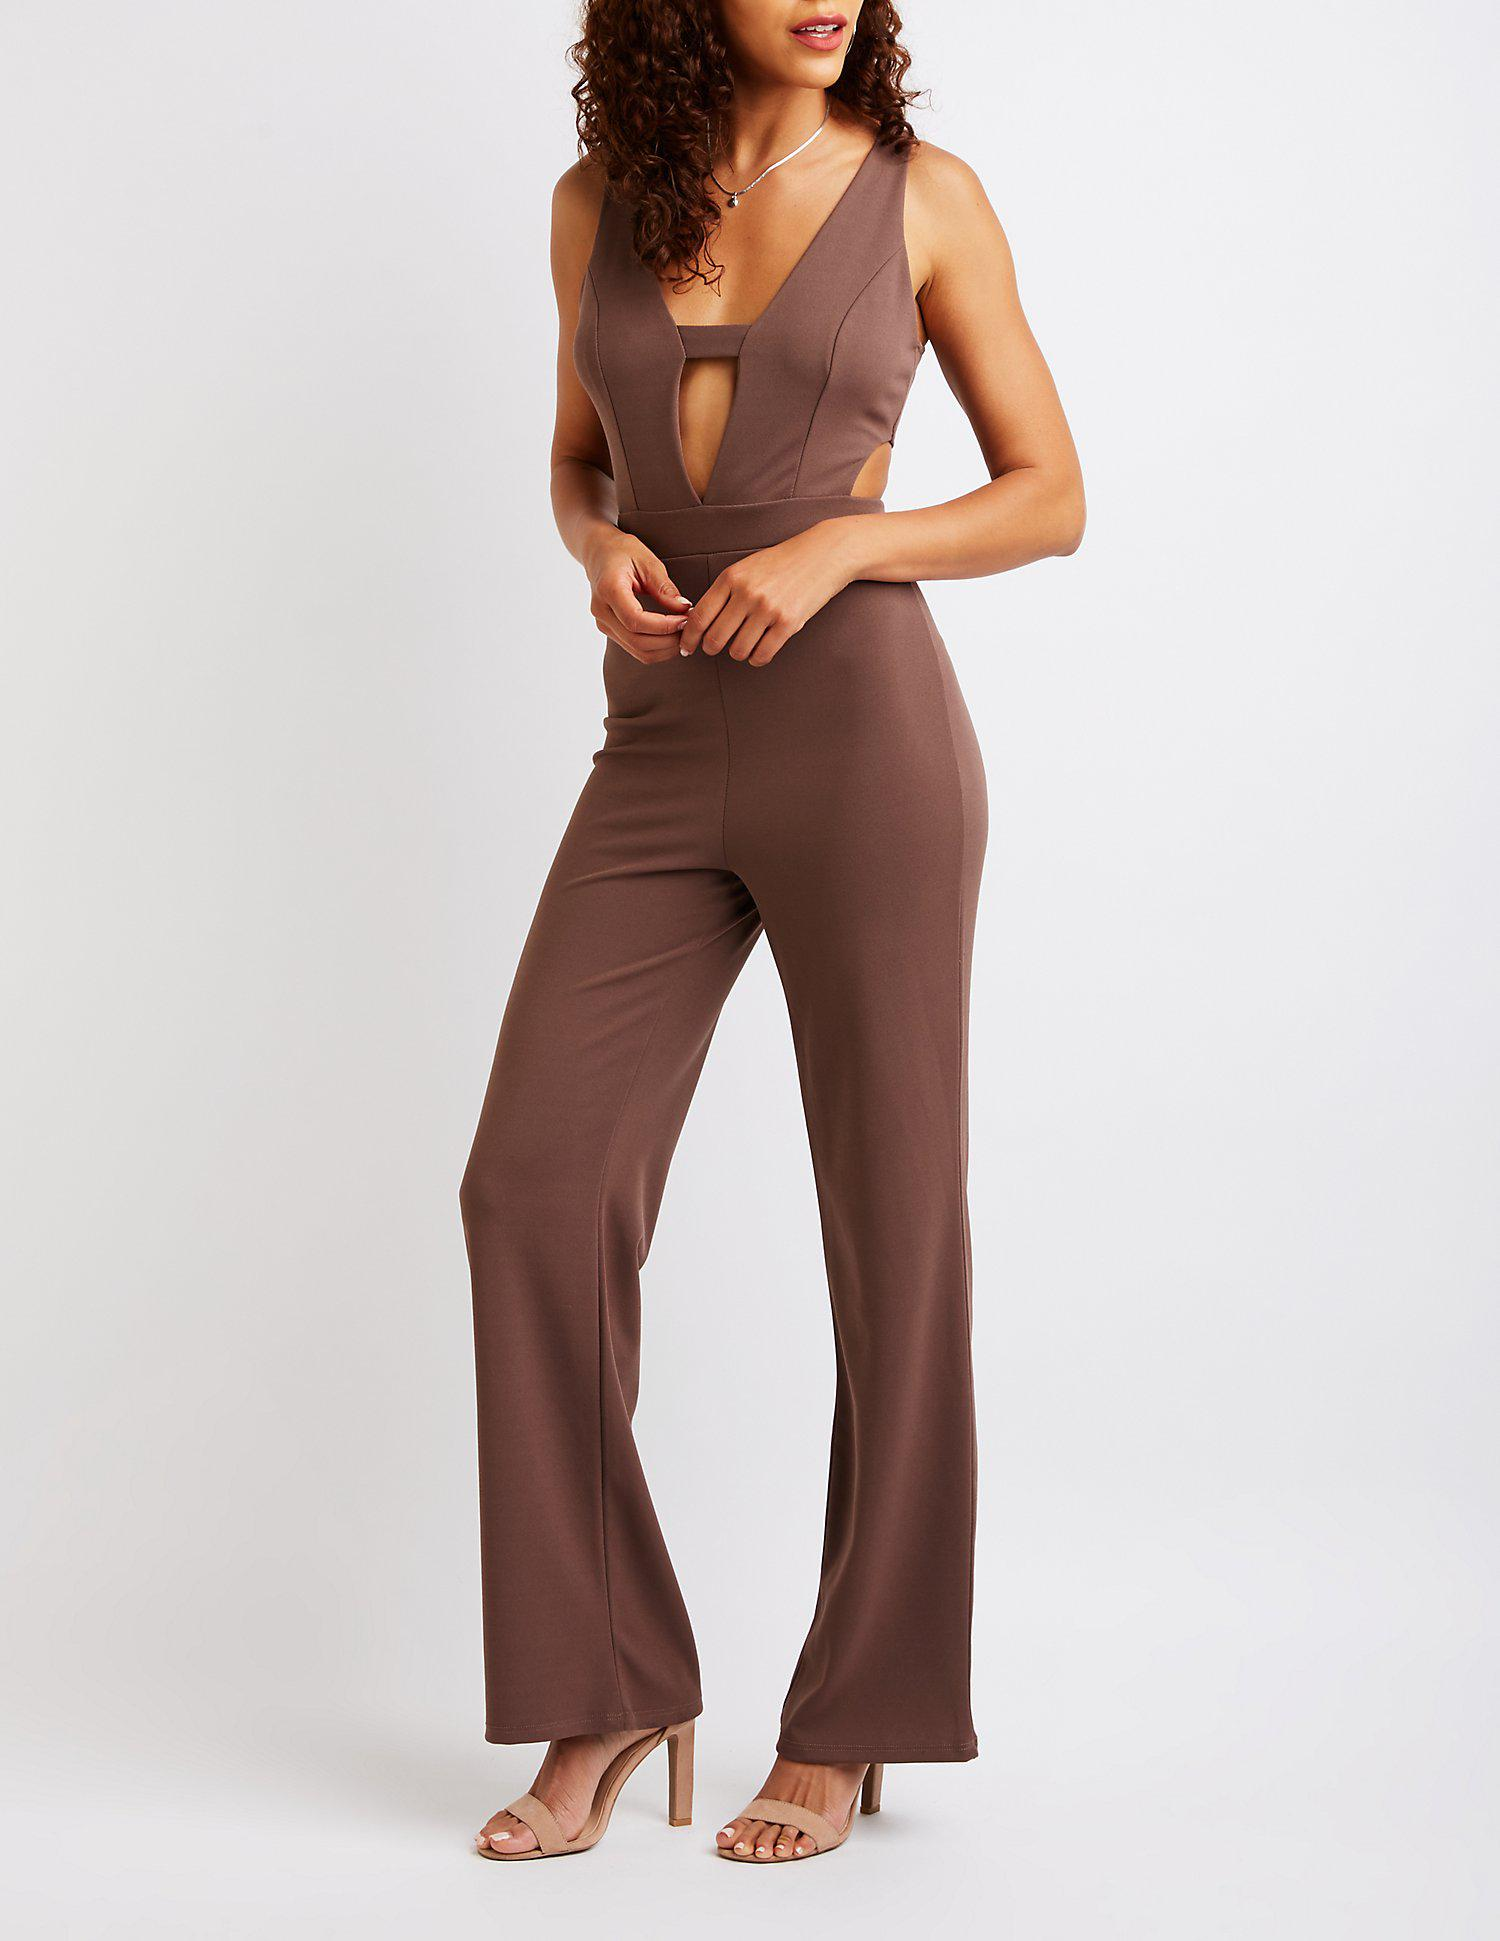 dbf4a29a9127 Lyst - Charlotte Russe Cut Out Wide Leg Jumpsuit in Brown